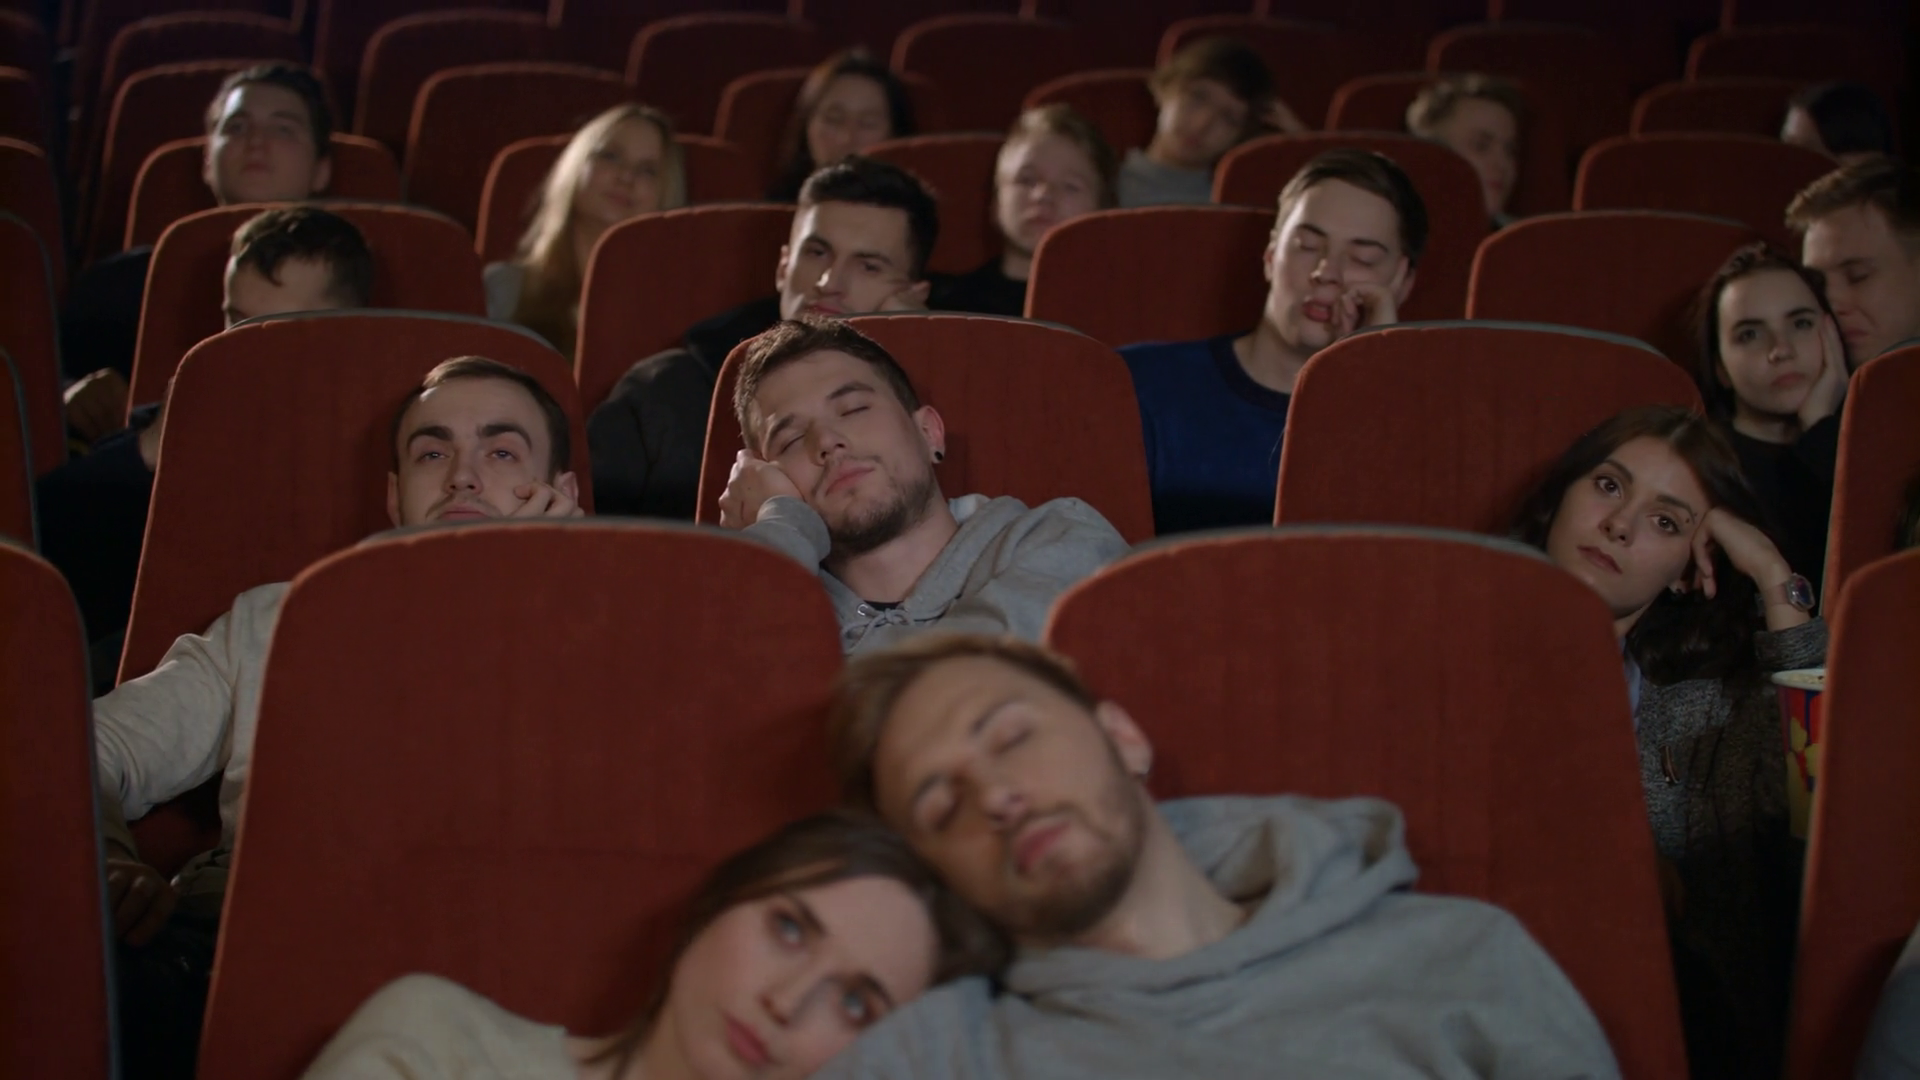 People watch boring movie at cinema in slow motion. Group of young people  sleeping watching boring movie in cinema. Bored audience watching film in  cinema. Spectators fall asleep from boring film Stock